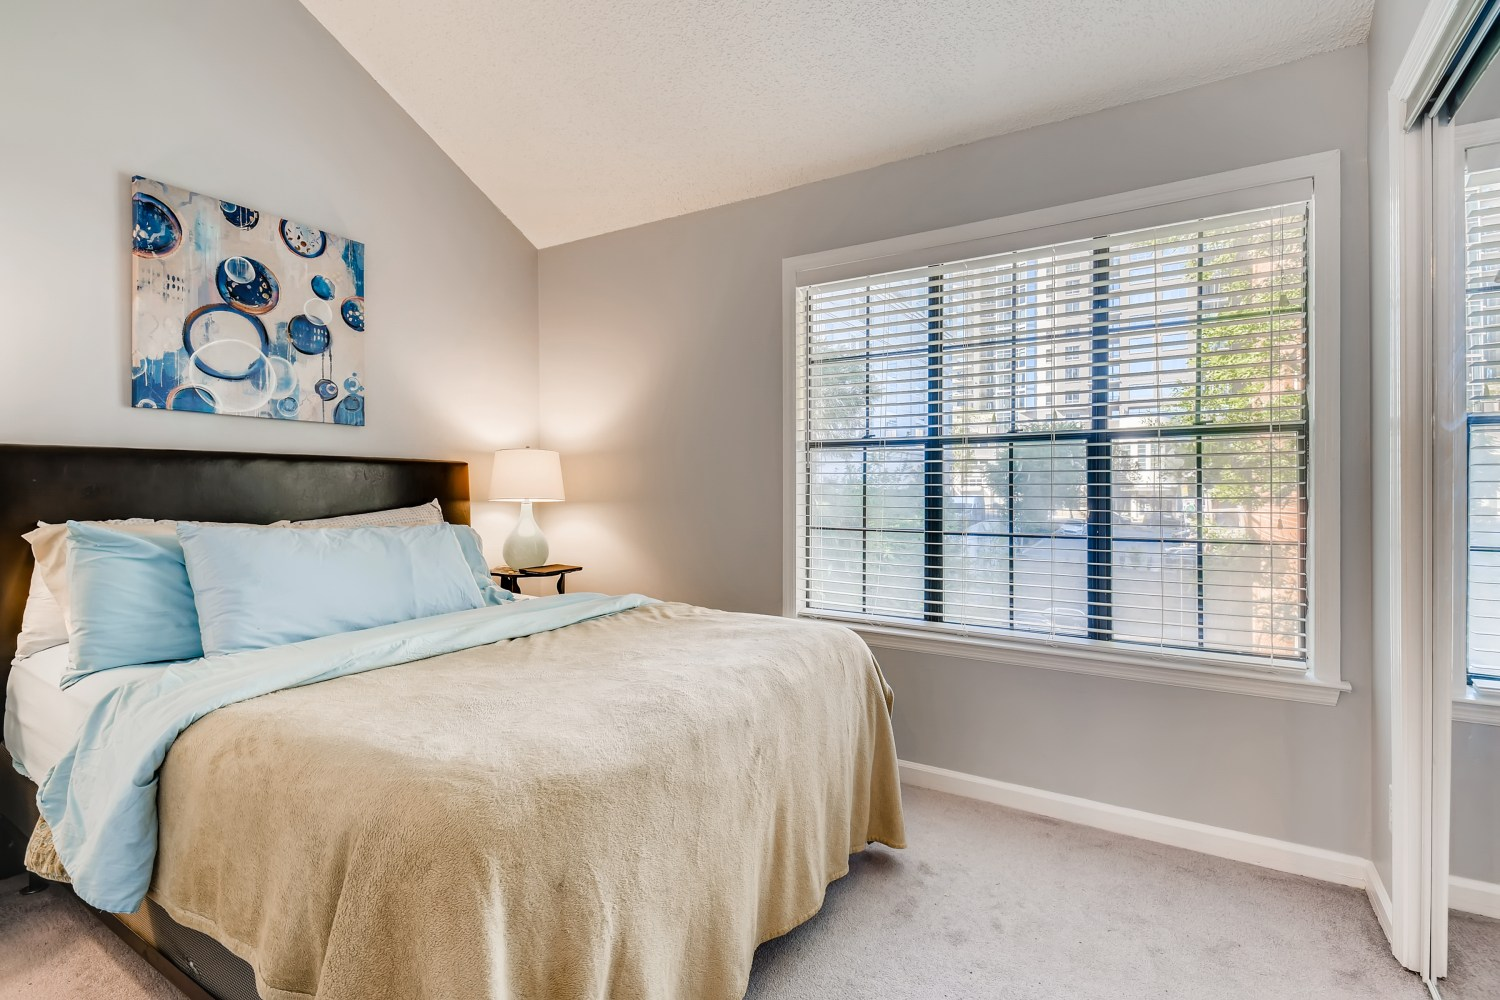 Get to know us before looking at all of our fully furnished rental properties. Learn all about Above the Line Properties and everything we stand for.